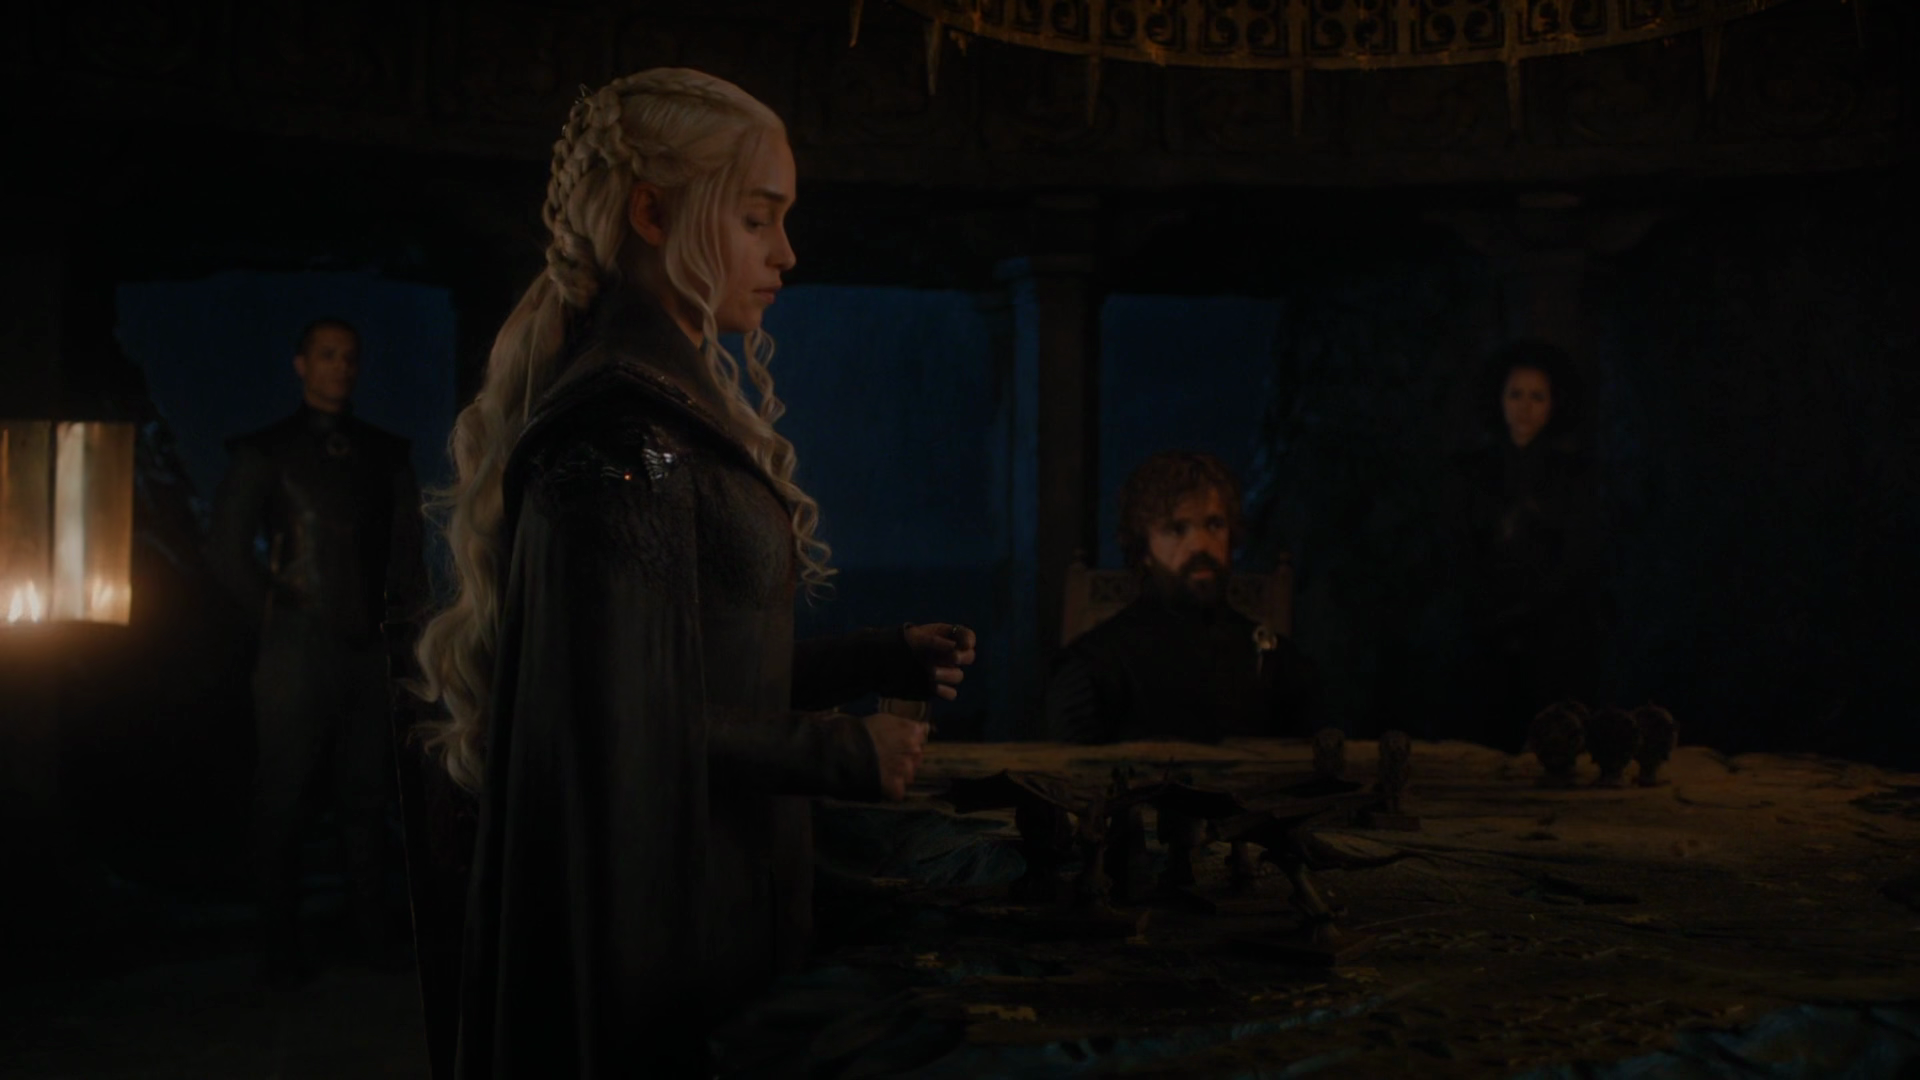 Game of Thrones S07E02 Stormborn 1080p 10bit AMZN WEB-DL 5 1 x265 HEVC-MZABI